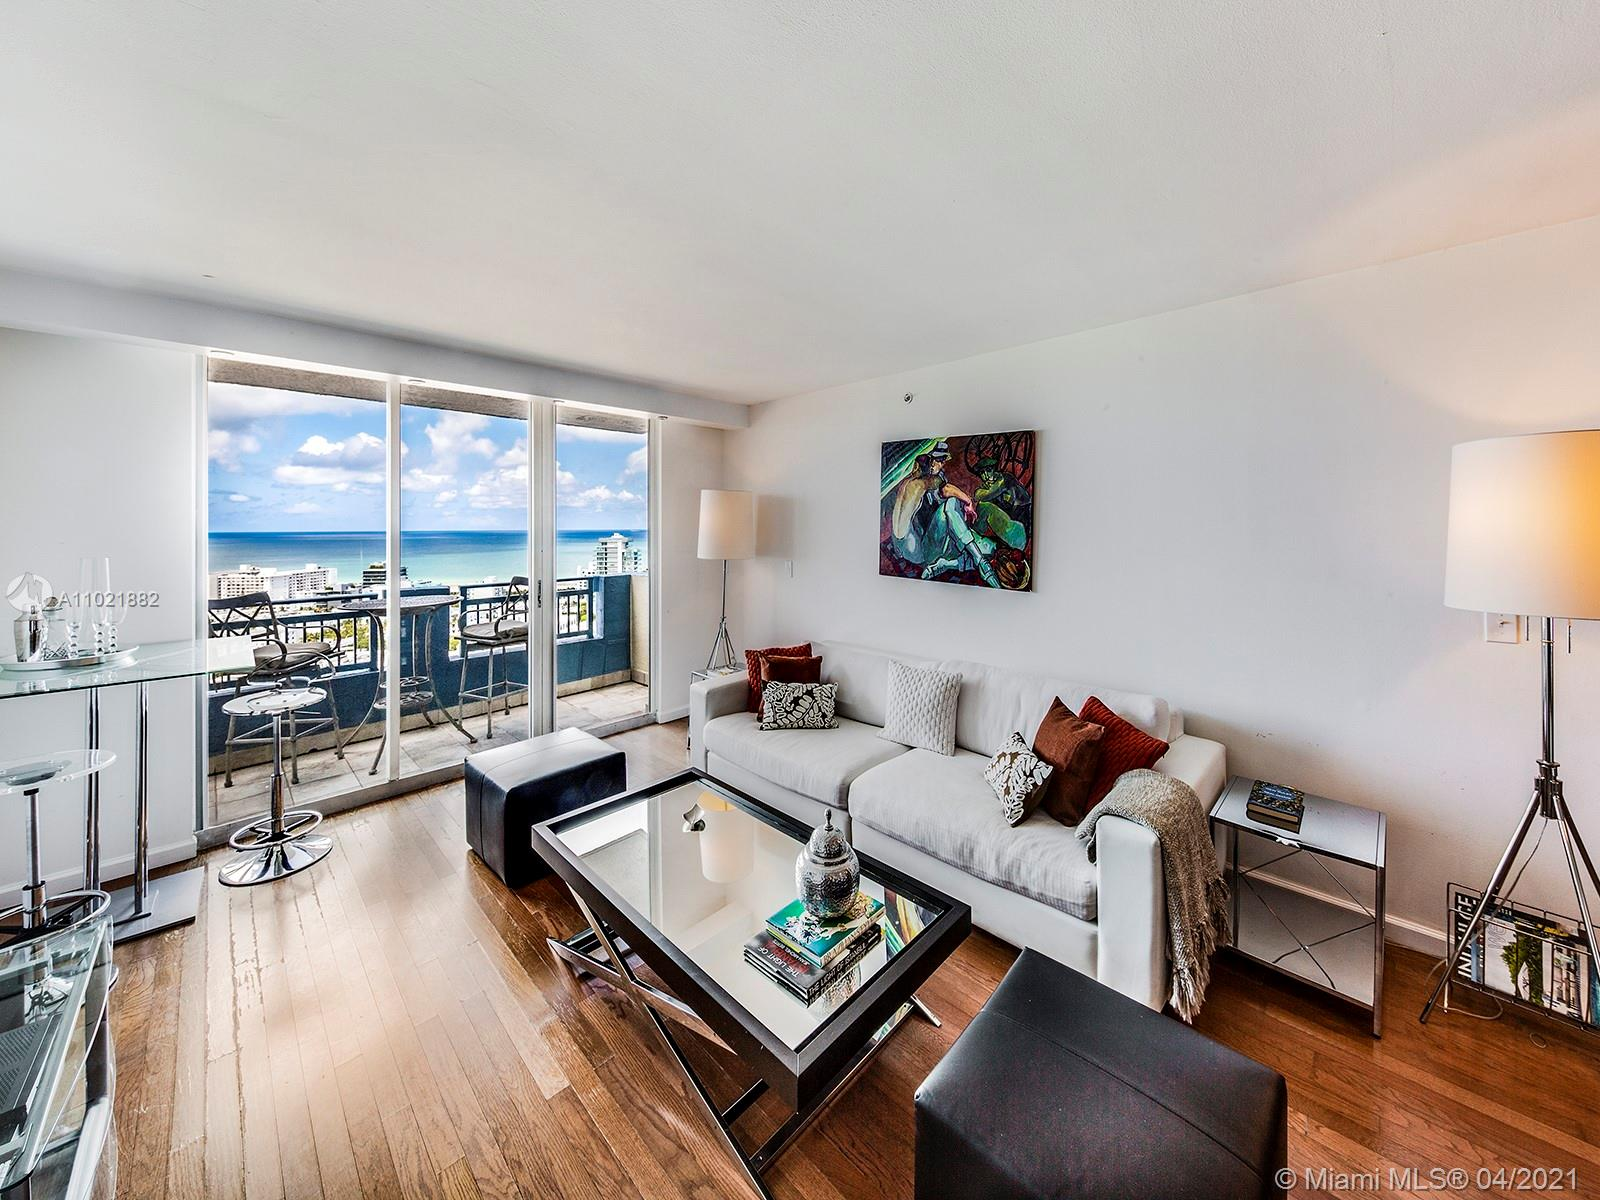 Bright unit with amazing views of ocean and South Beach and remodeled baths. Yacht Club offers pool, hot tub, tennis courts, fitness center, sauna, BBQ area, valet parking, doorman and convenience store. Walking distance to the beach, South Pointe Park, Marina, market and restaurants.